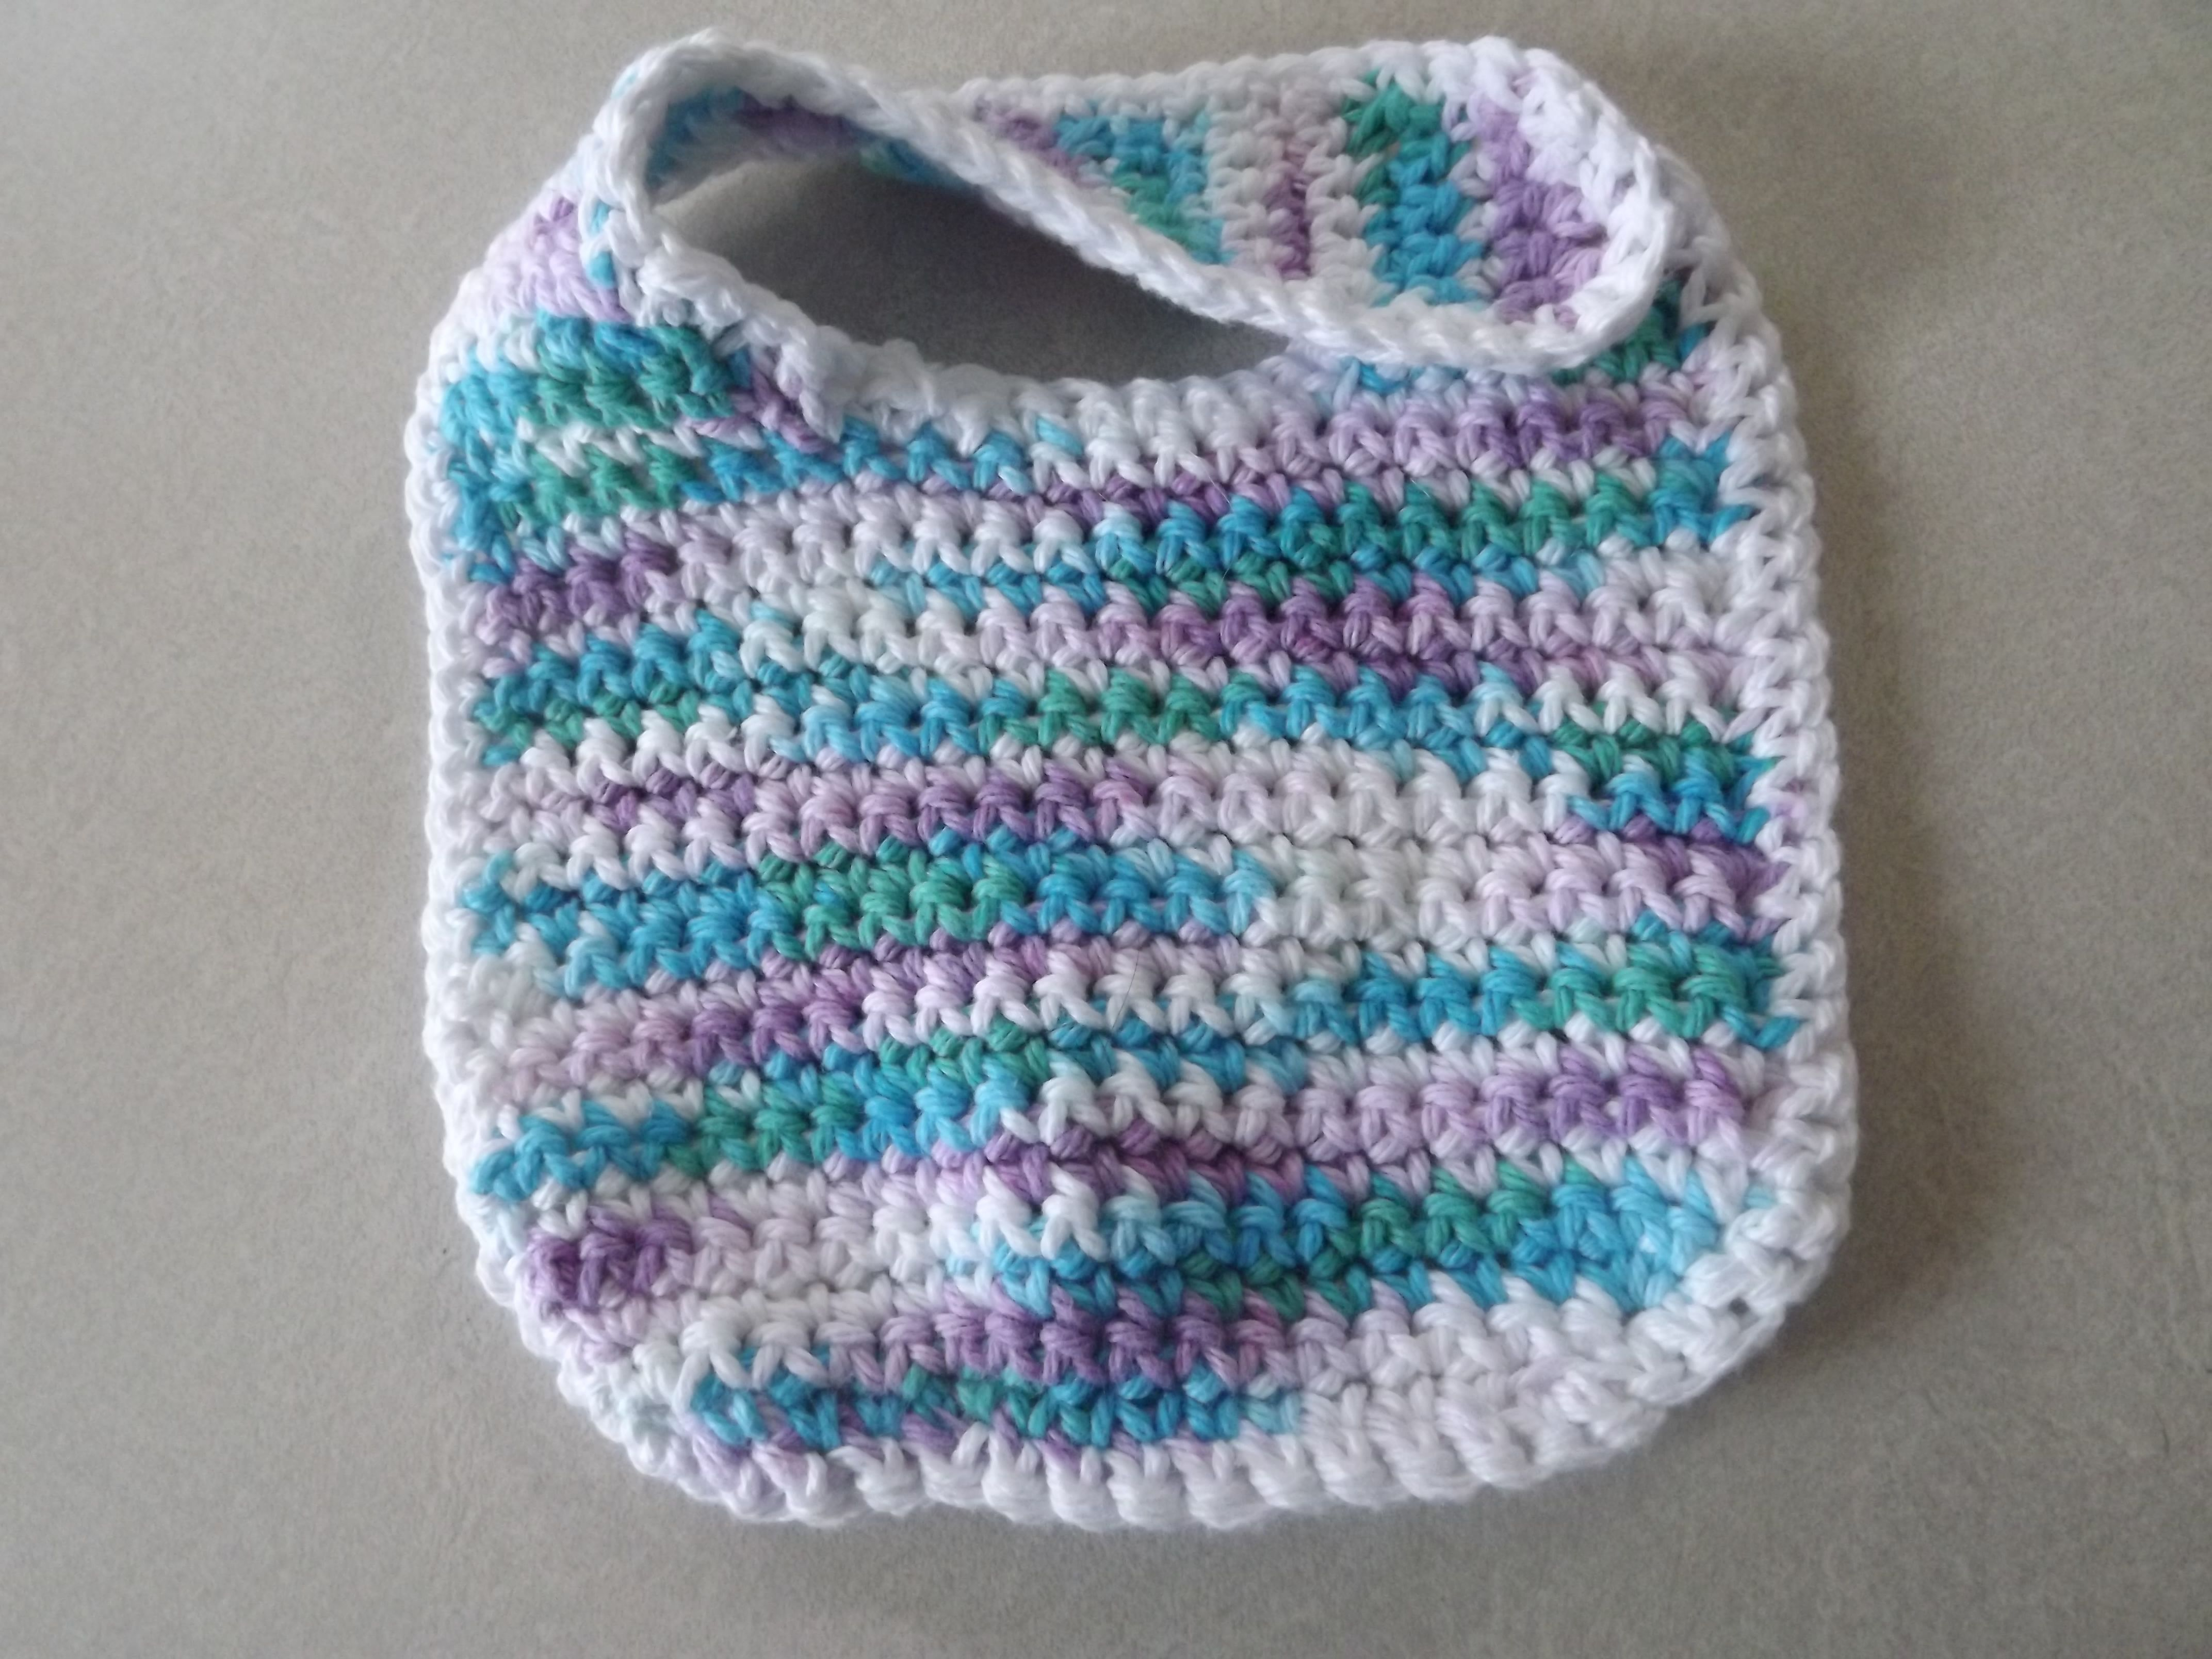 Free crochet patterns for baby boys free crochet crochet and bibs free crochet patterns for baby boys bankloansurffo Image collections